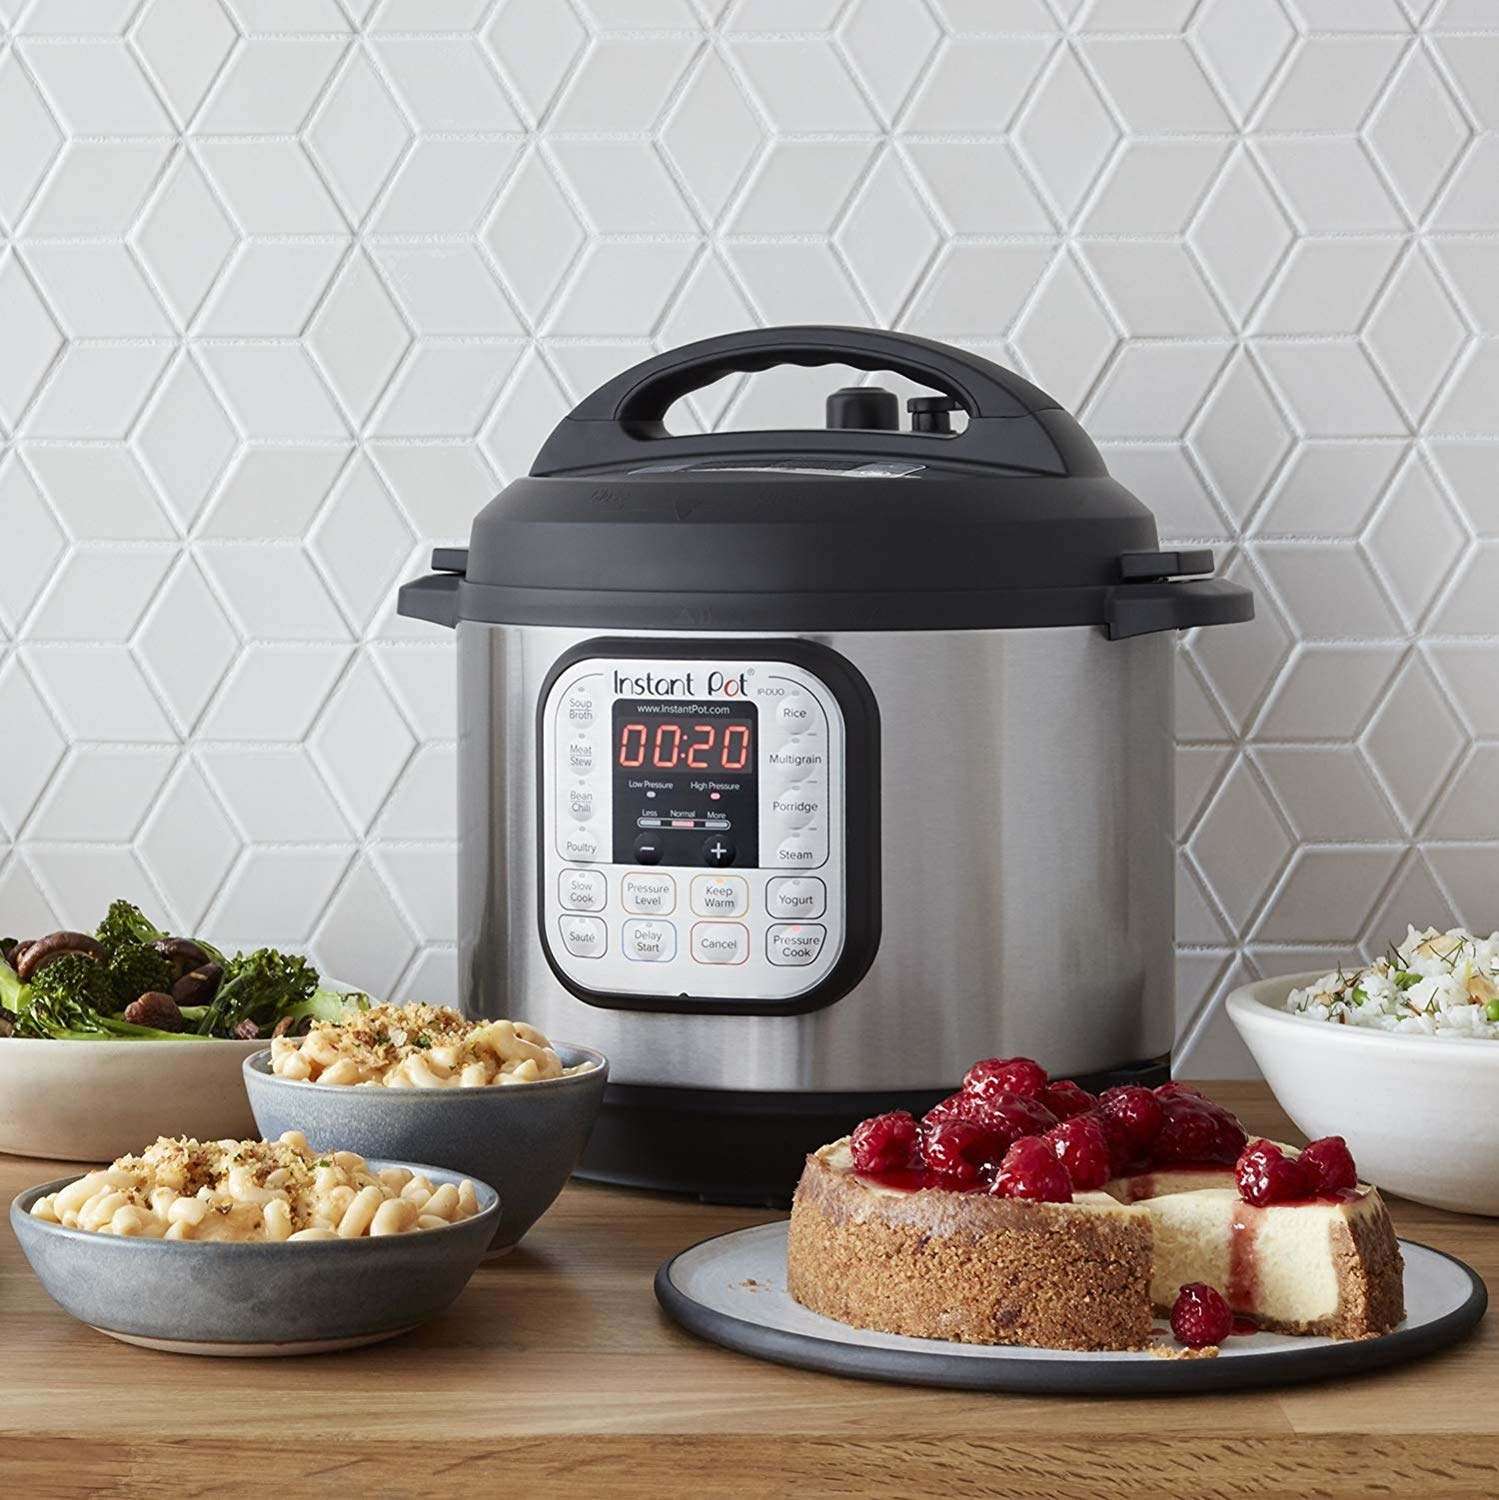 An Instant Pot surrounded by food